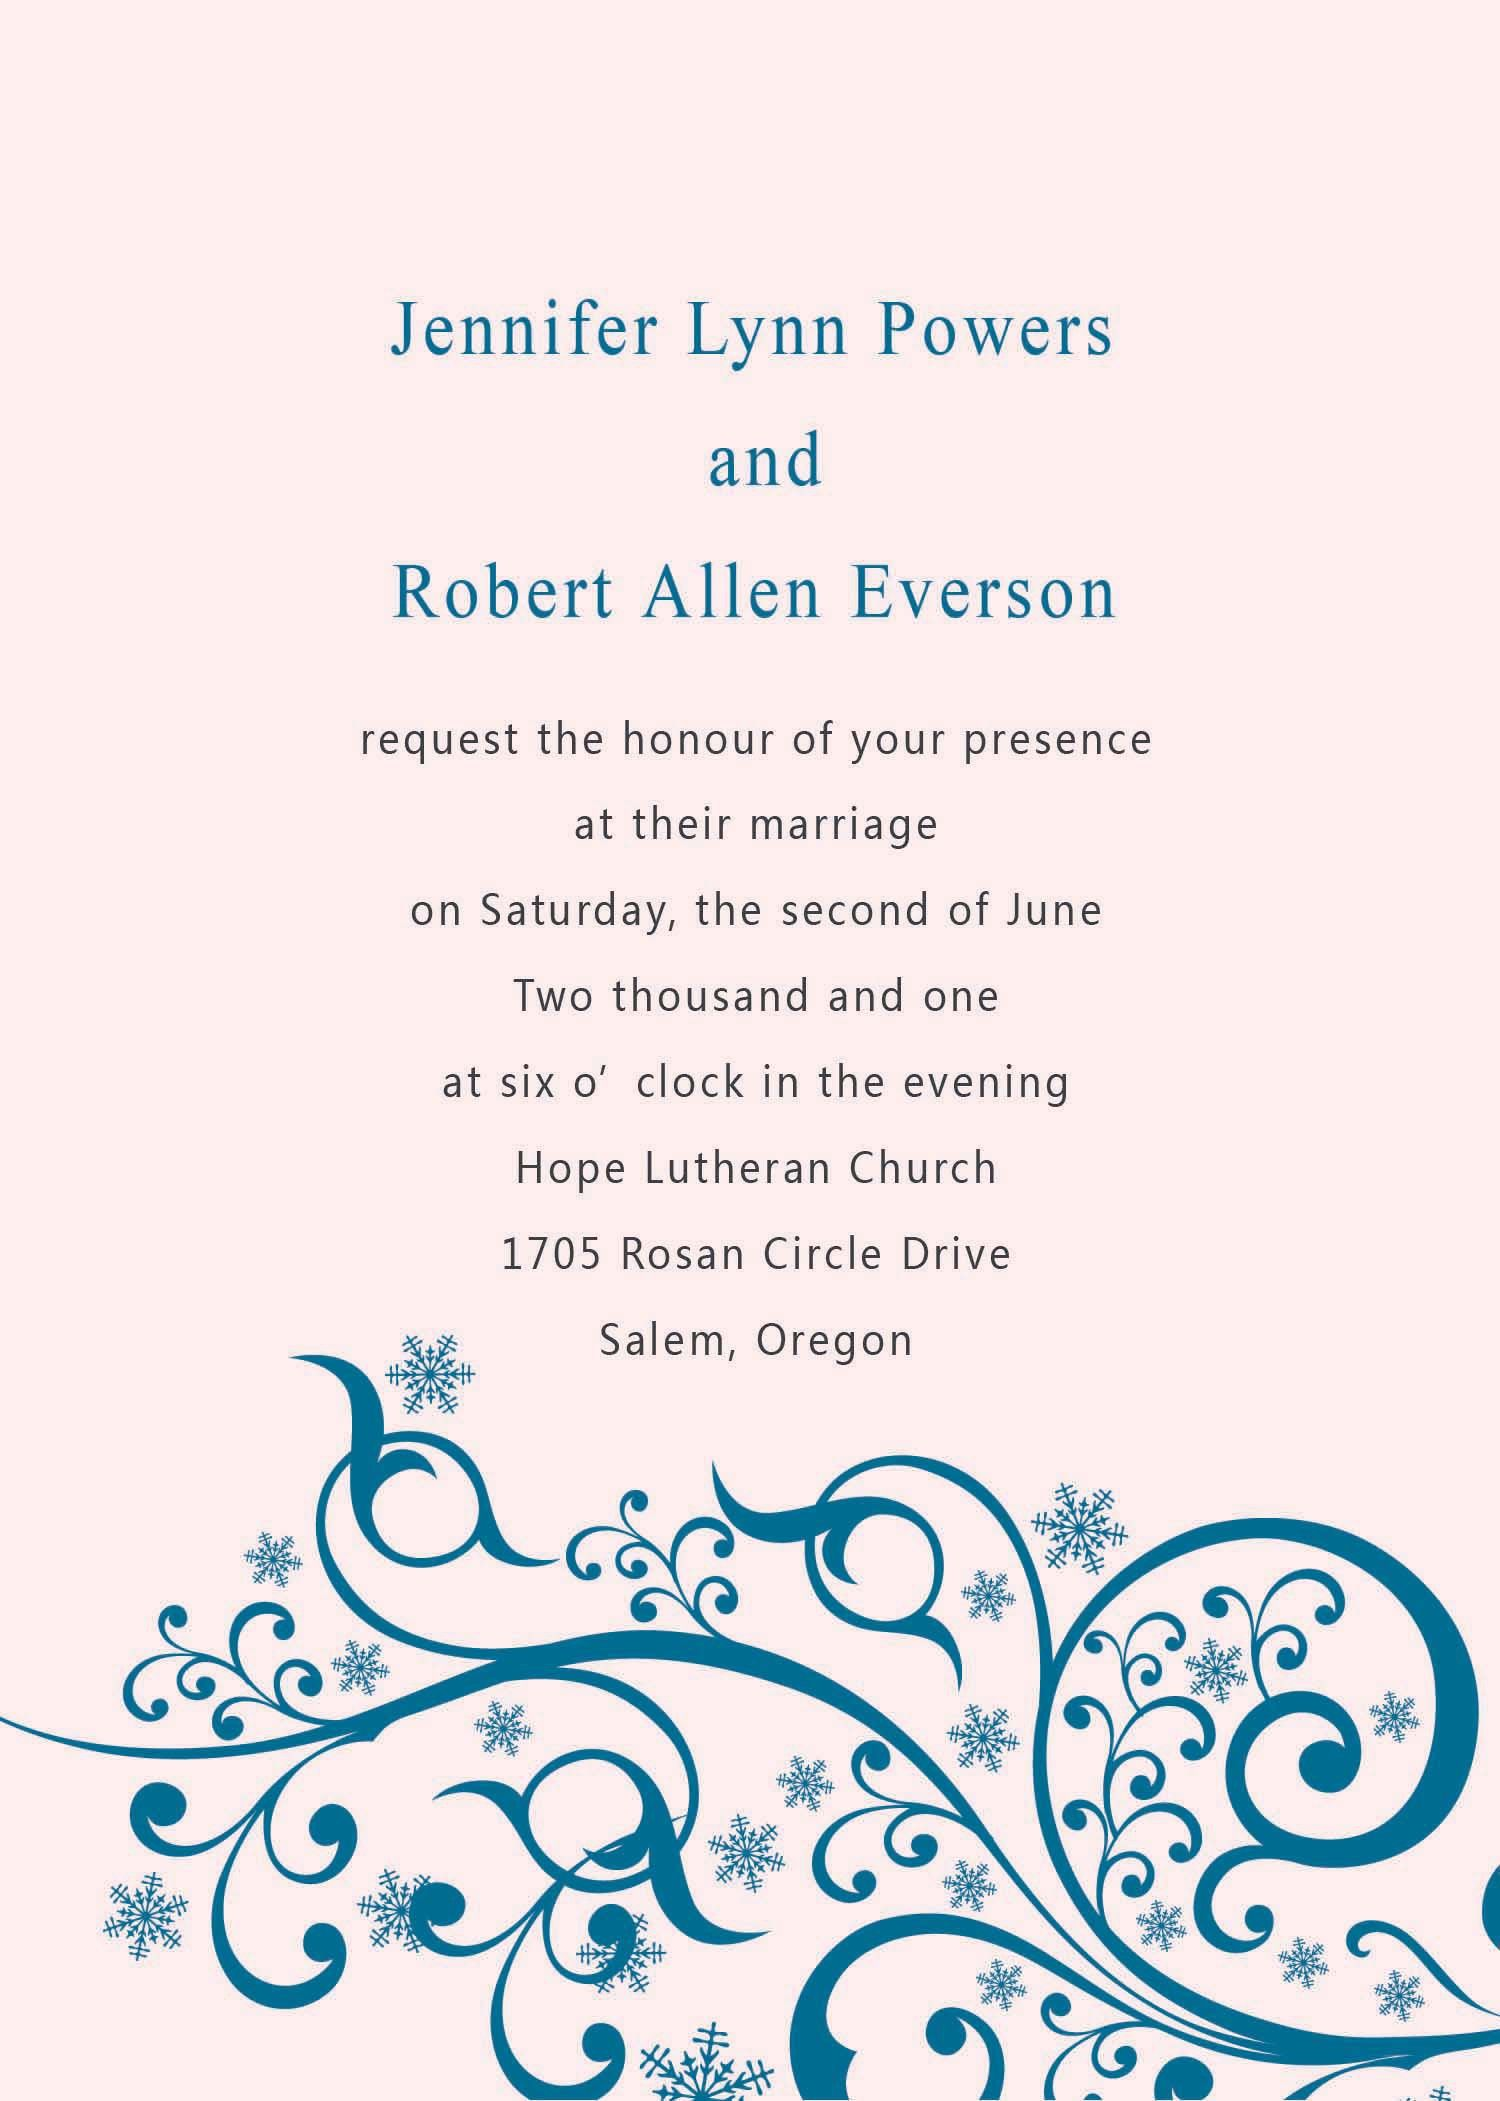 Wedding invitation templates free download the true meaning of wedding invitation templates free download the true meaning of wedding invitations templates free download our templates use basic fonts that you can stopboris Image collections